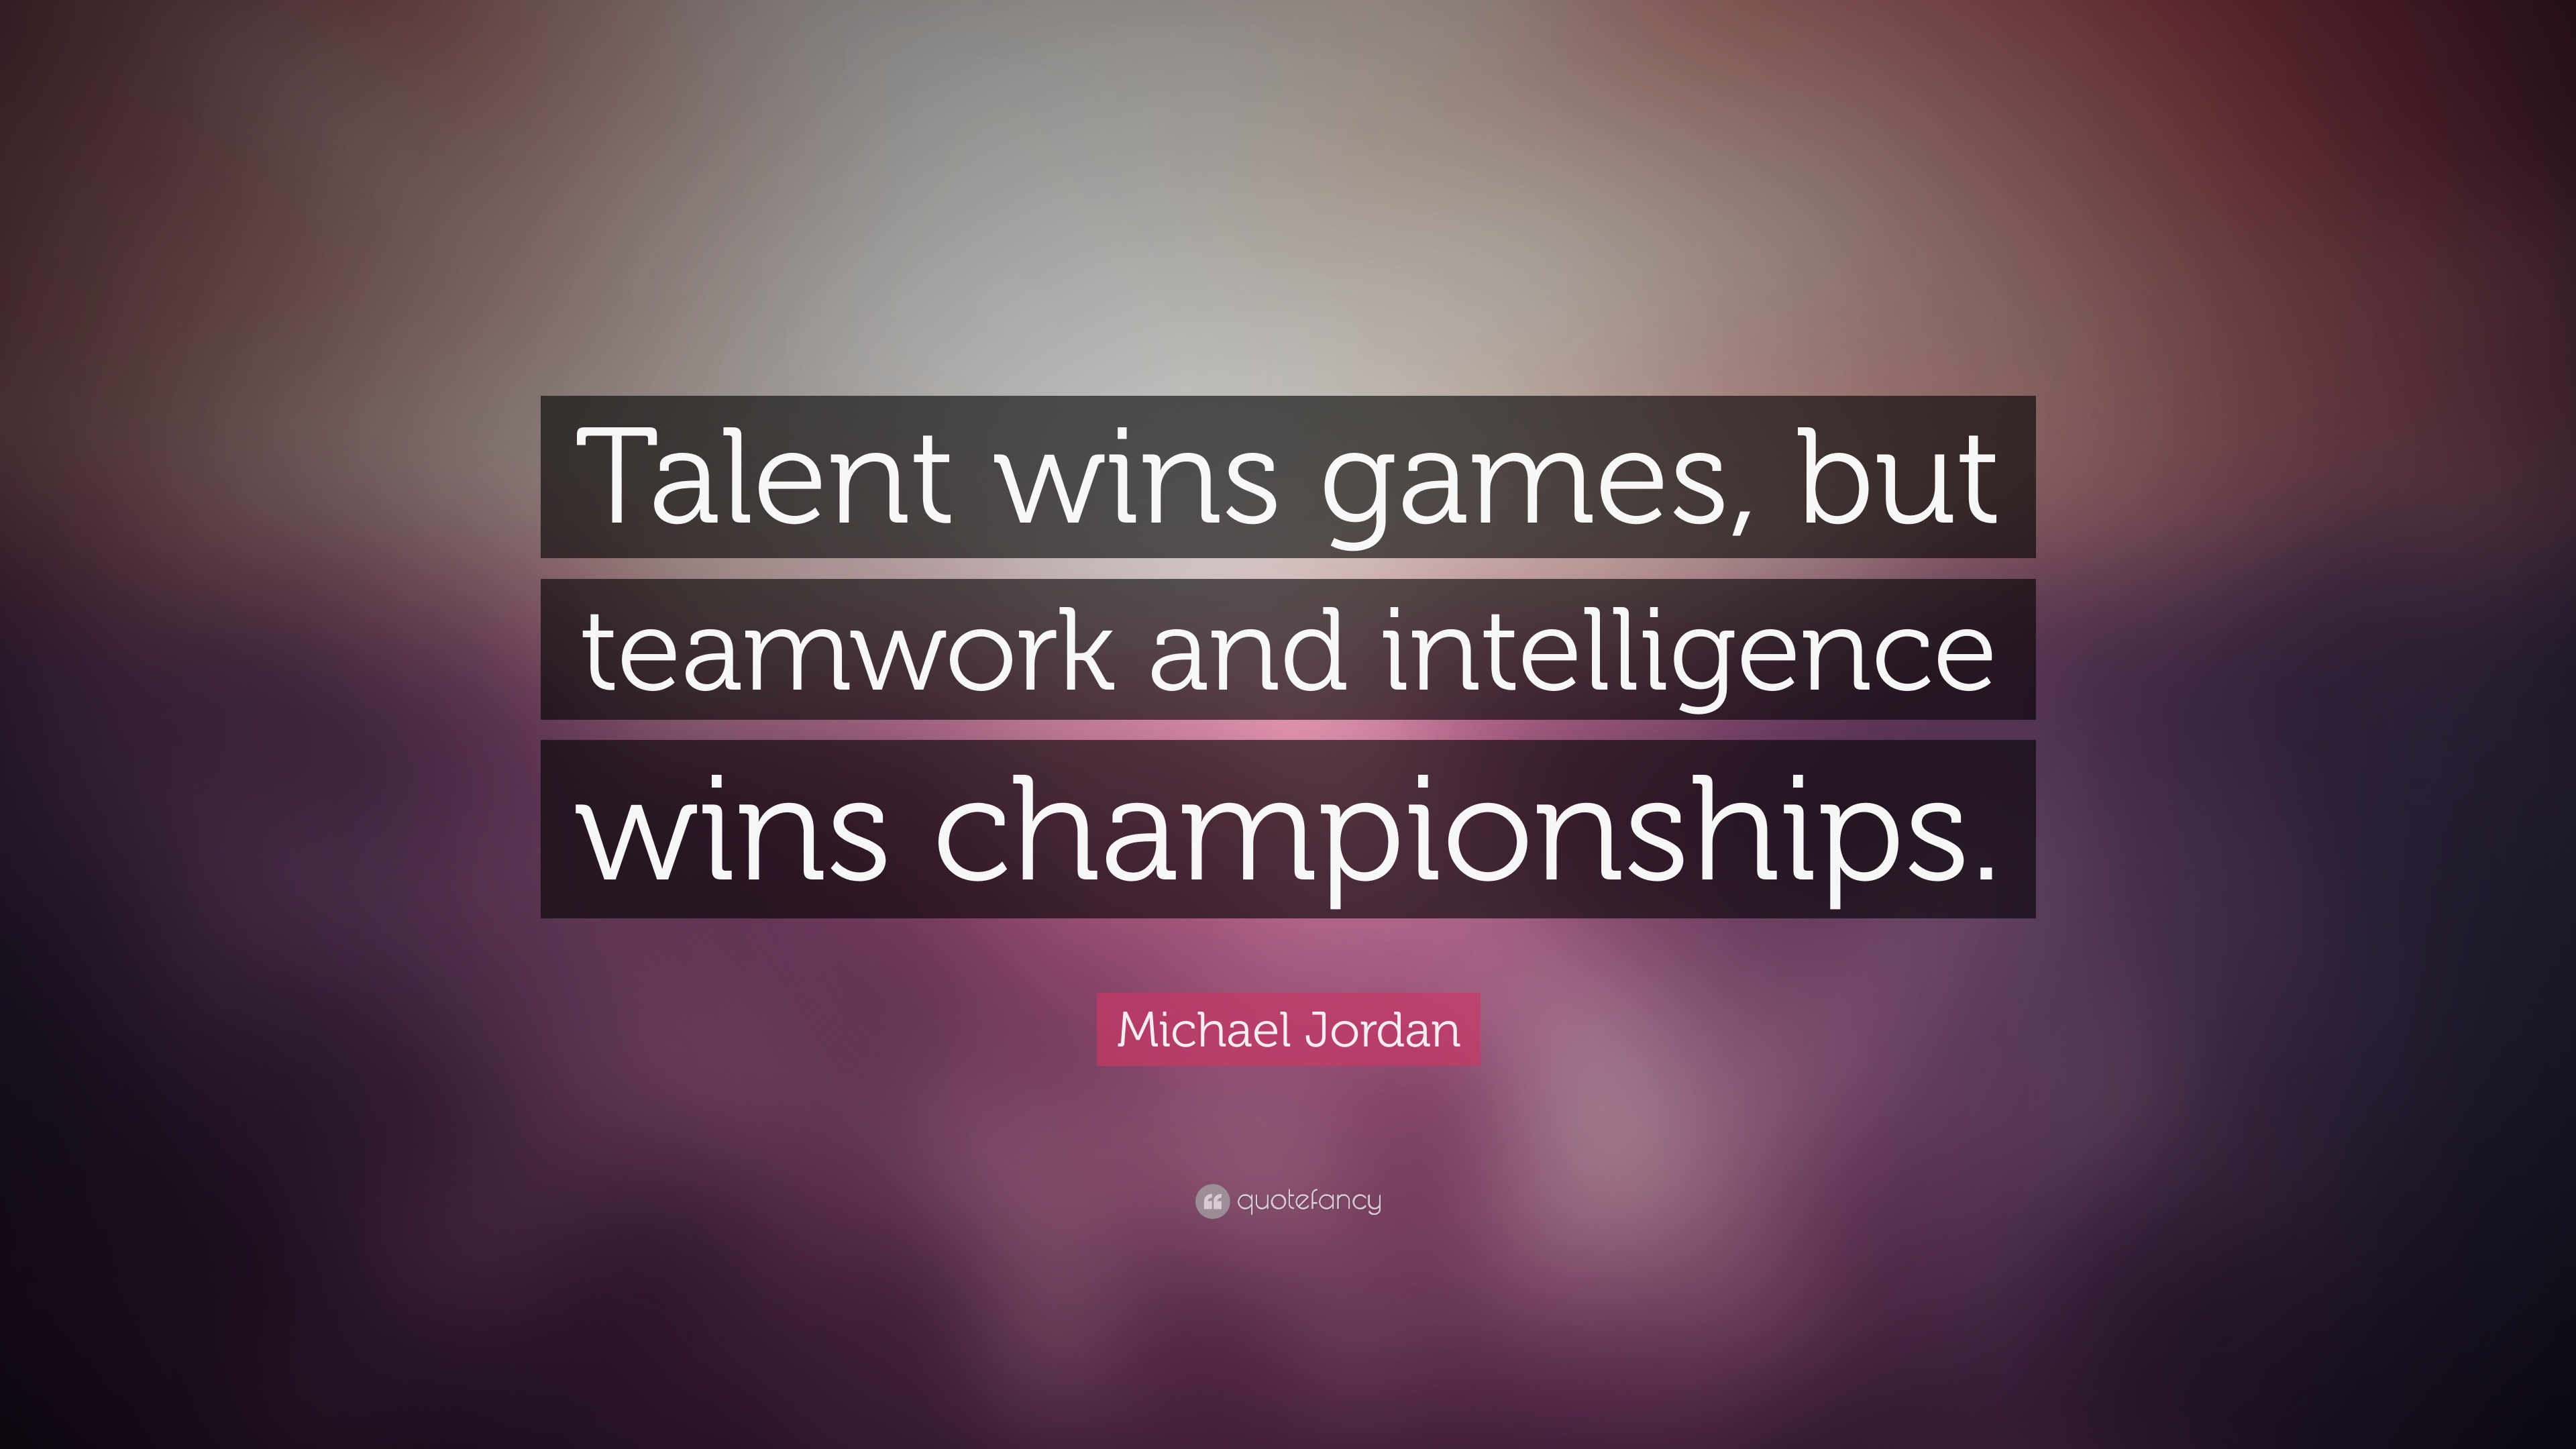 Teamwork Intelligence Wins And Talent Championships Wins Games